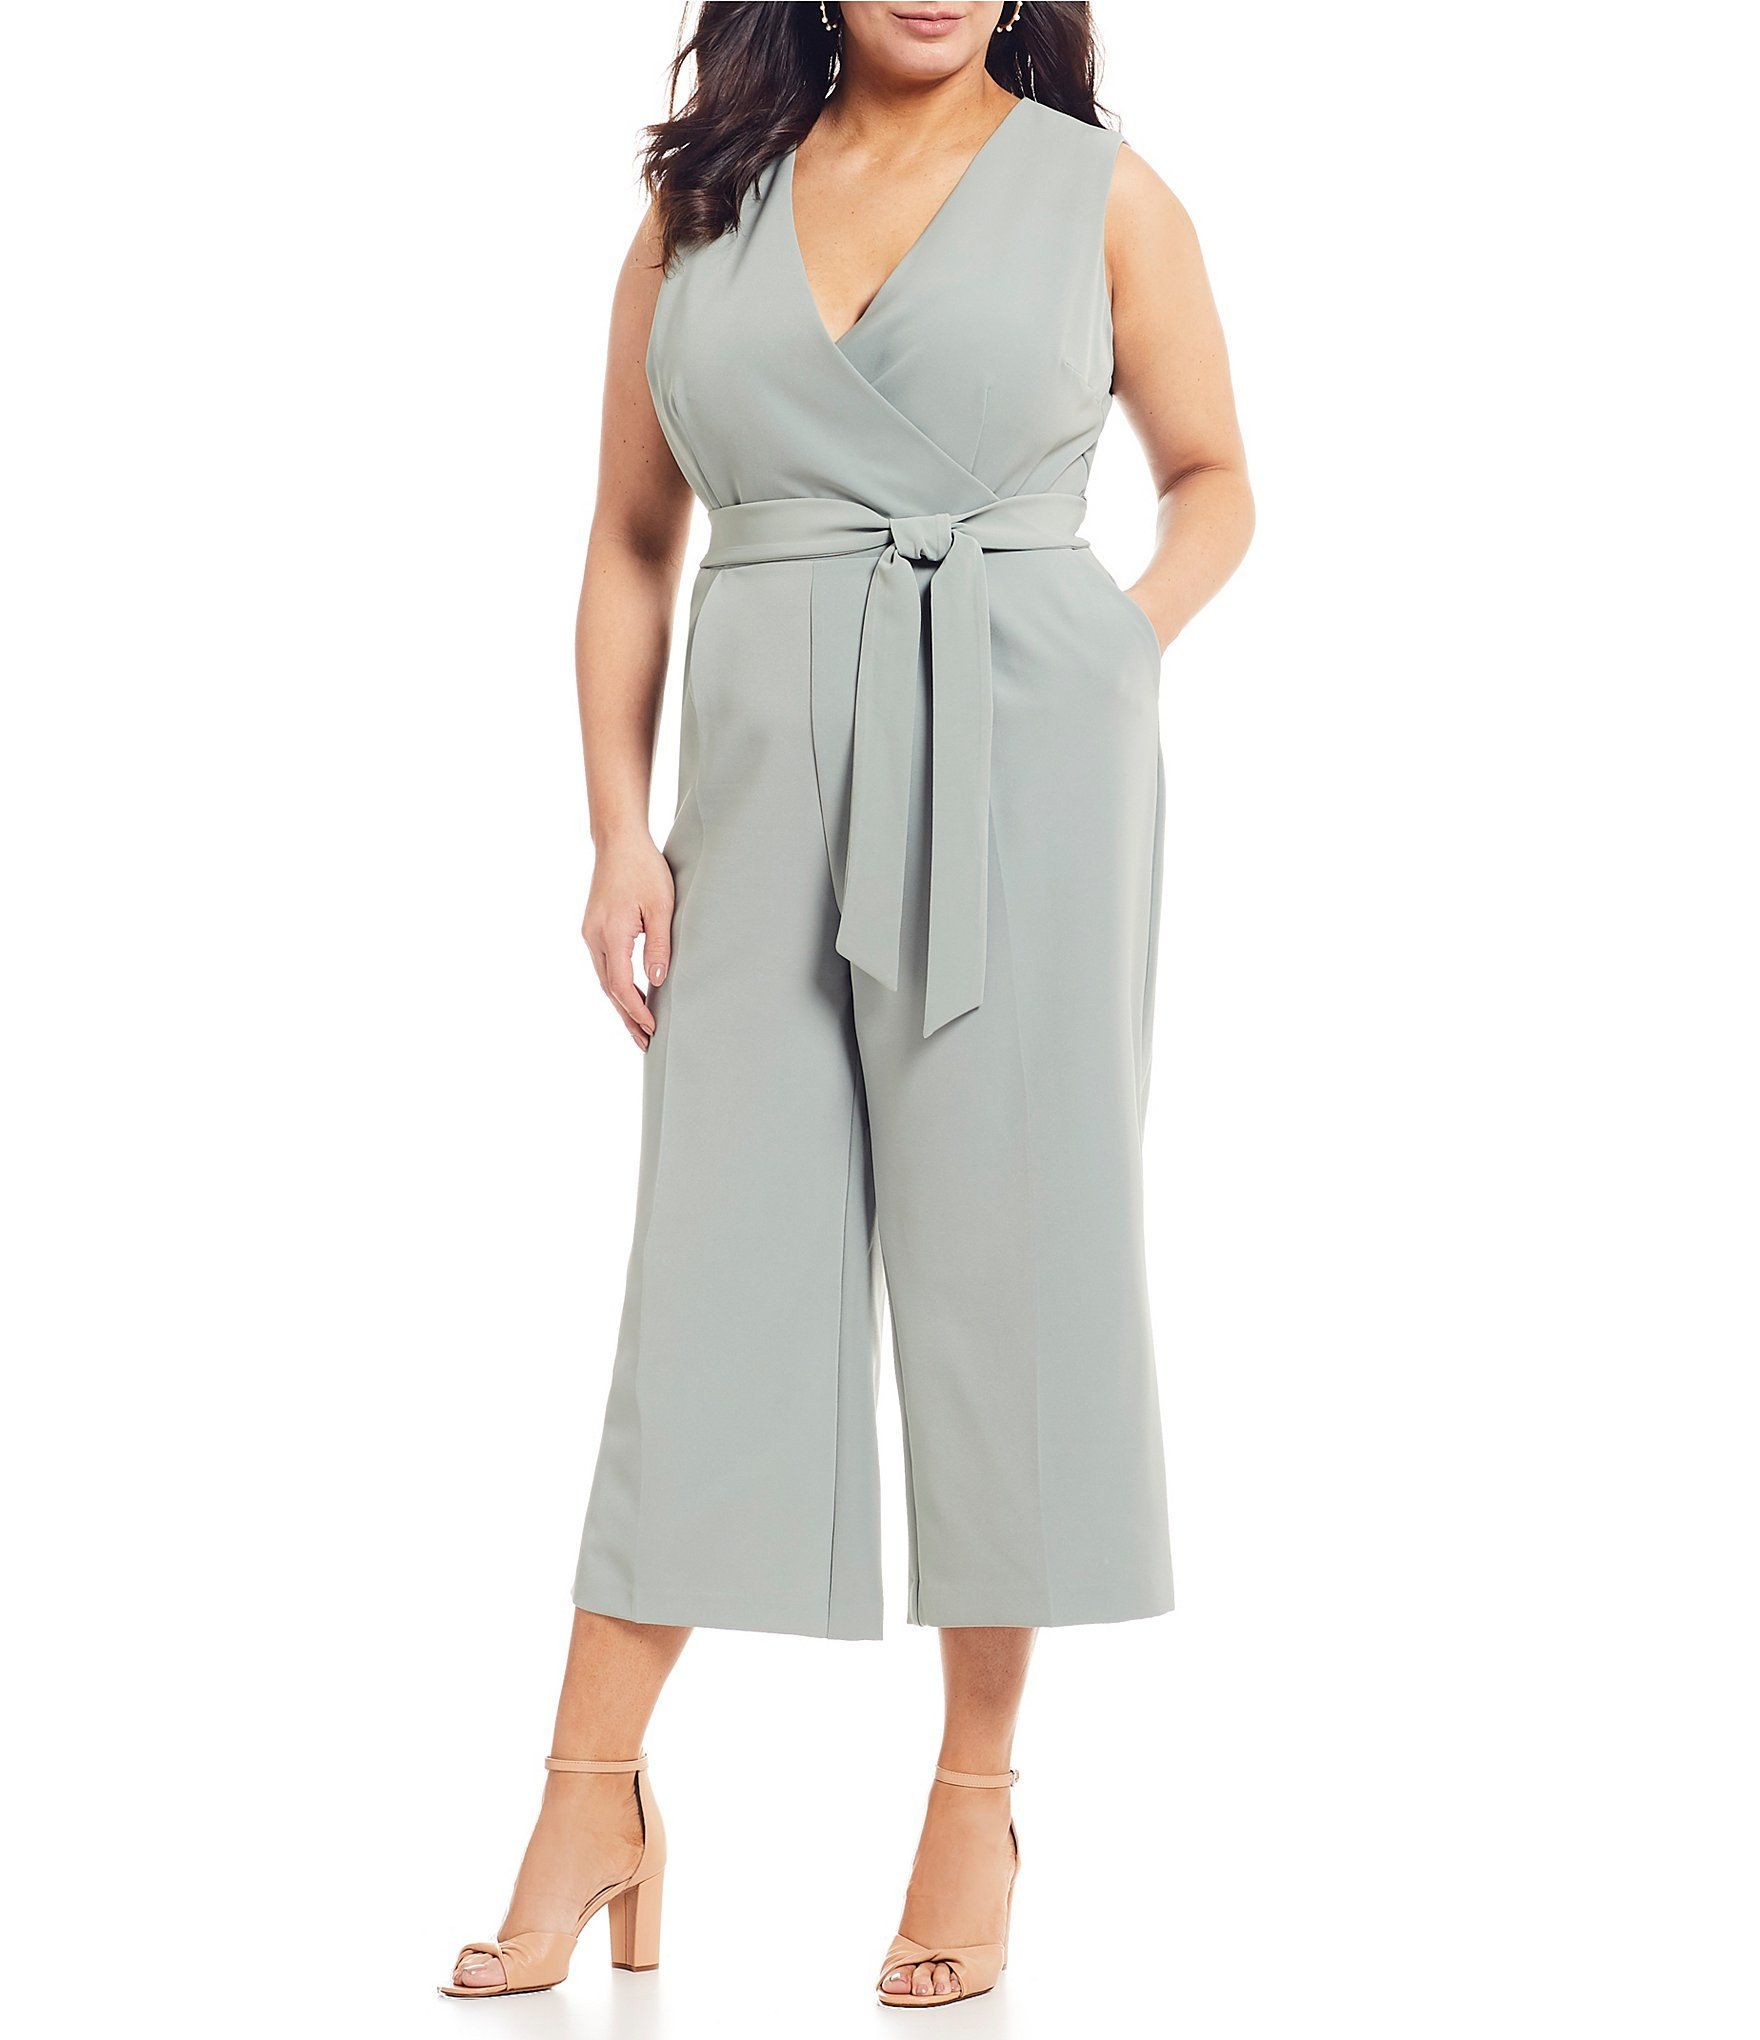 Vince Camuto Plus Size V-Neck Belted Crop Jumpsuit | Dream ...